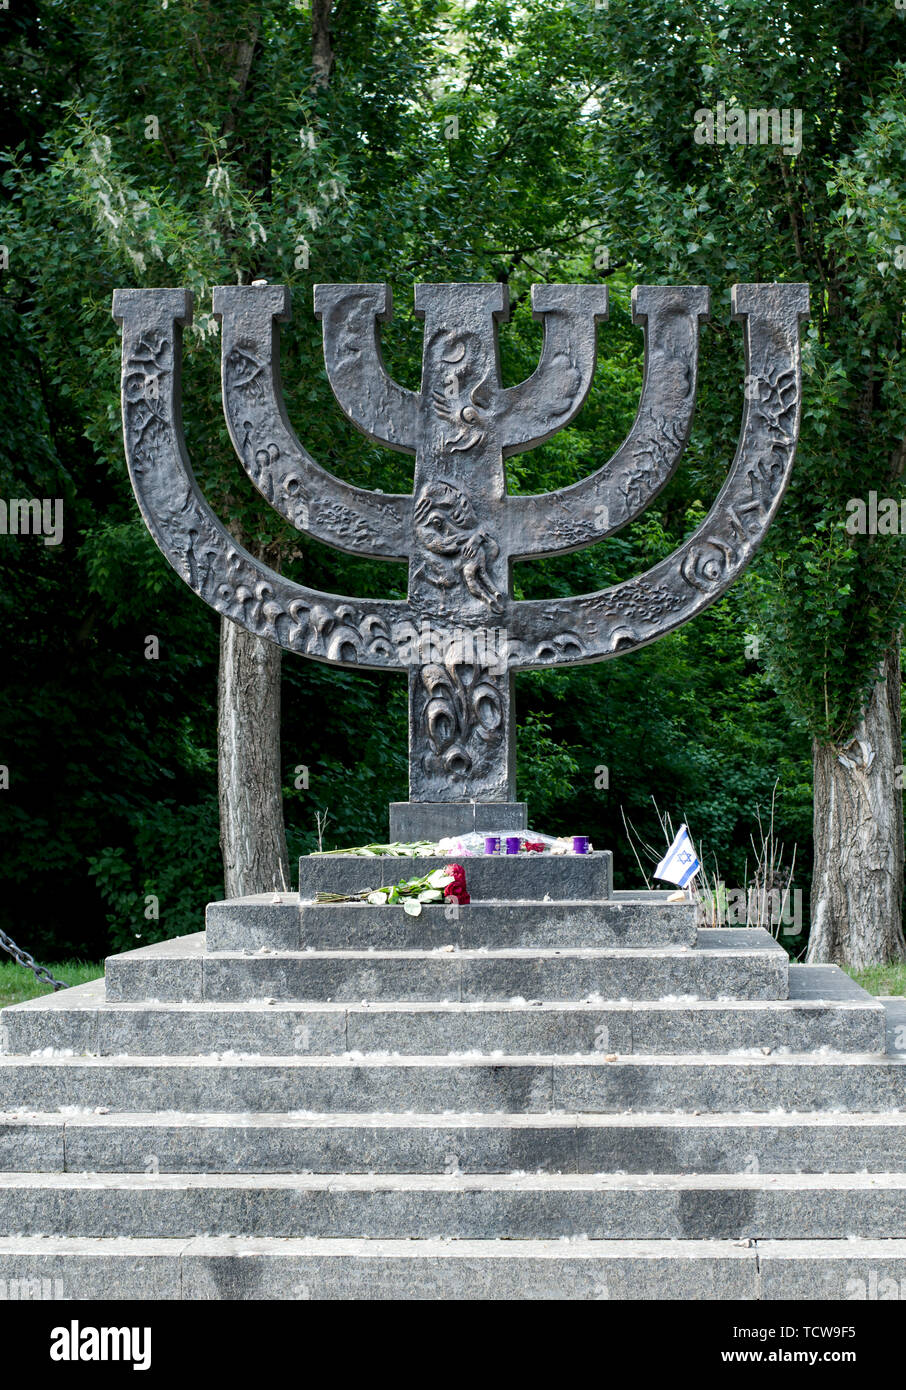 Kiev Ukraine - May 25, 2019. Menorahs Monument at Babi Yar memorial complex, place of massacres carried out by German forces during World War II. - Stock Image